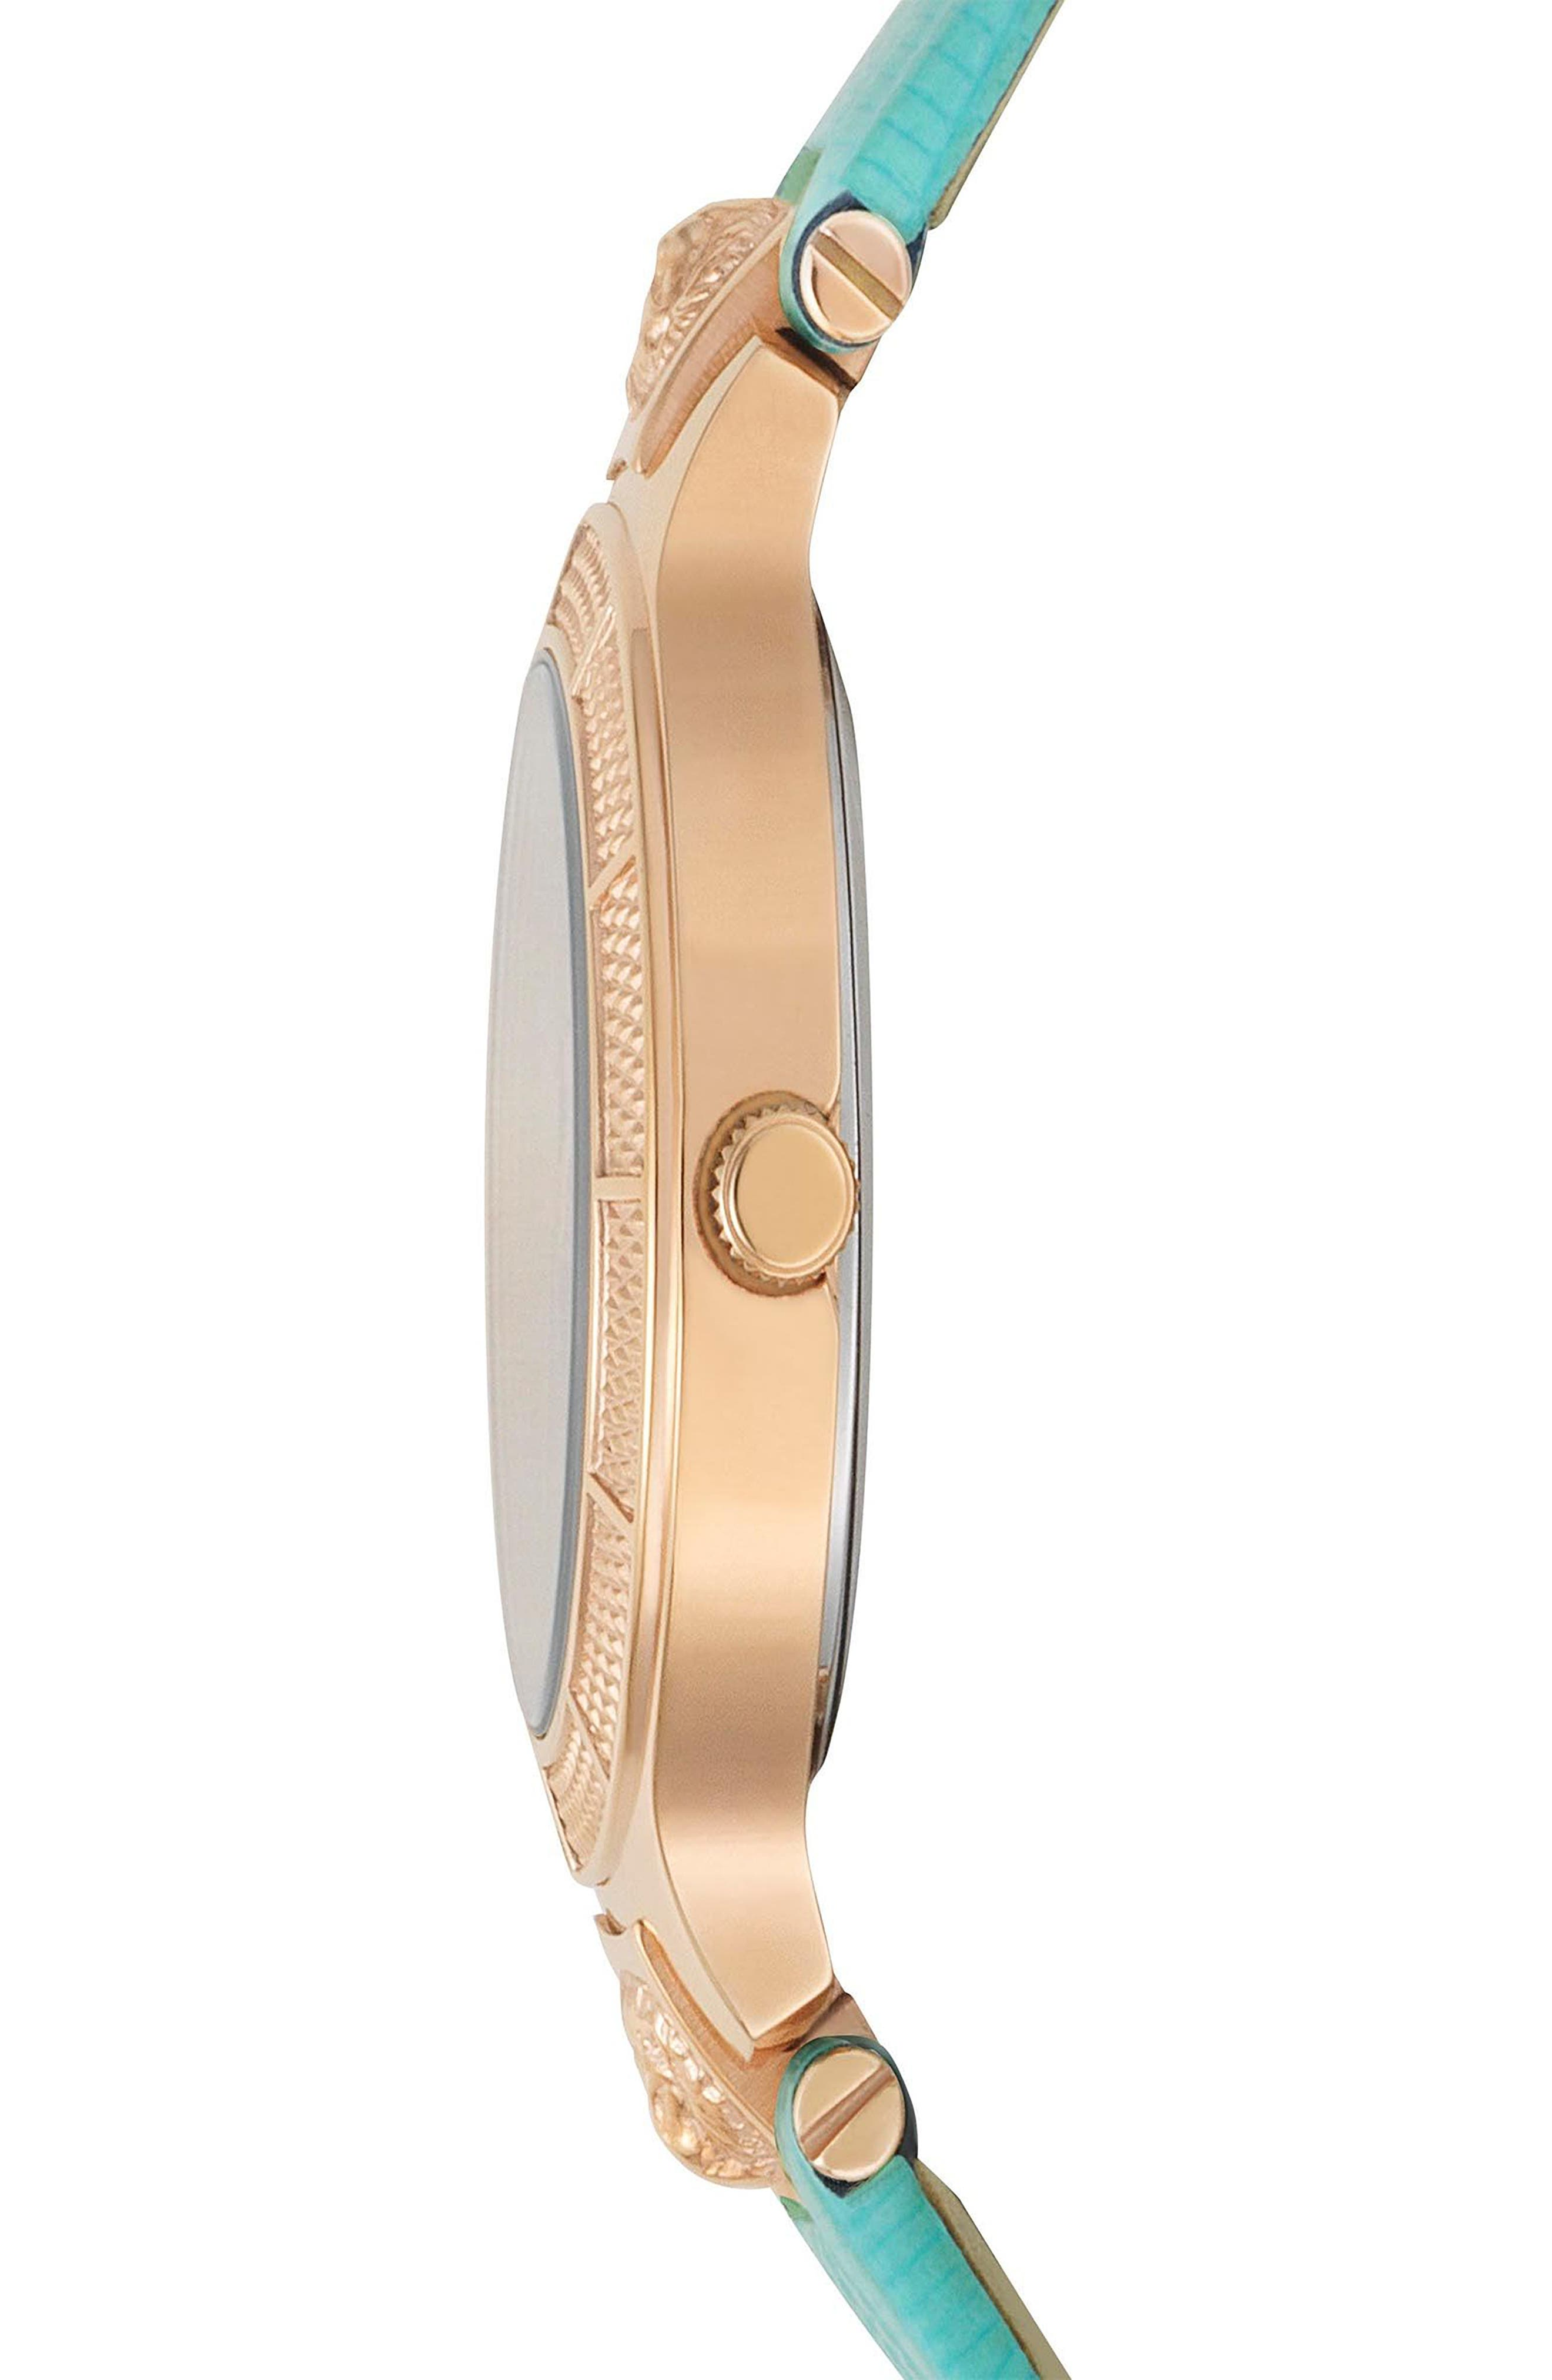 VERSUS VERSACE, Claremont Leather Strap Watch, 32mm, Alternate thumbnail 2, color, GREEN/ ROSE GOLD